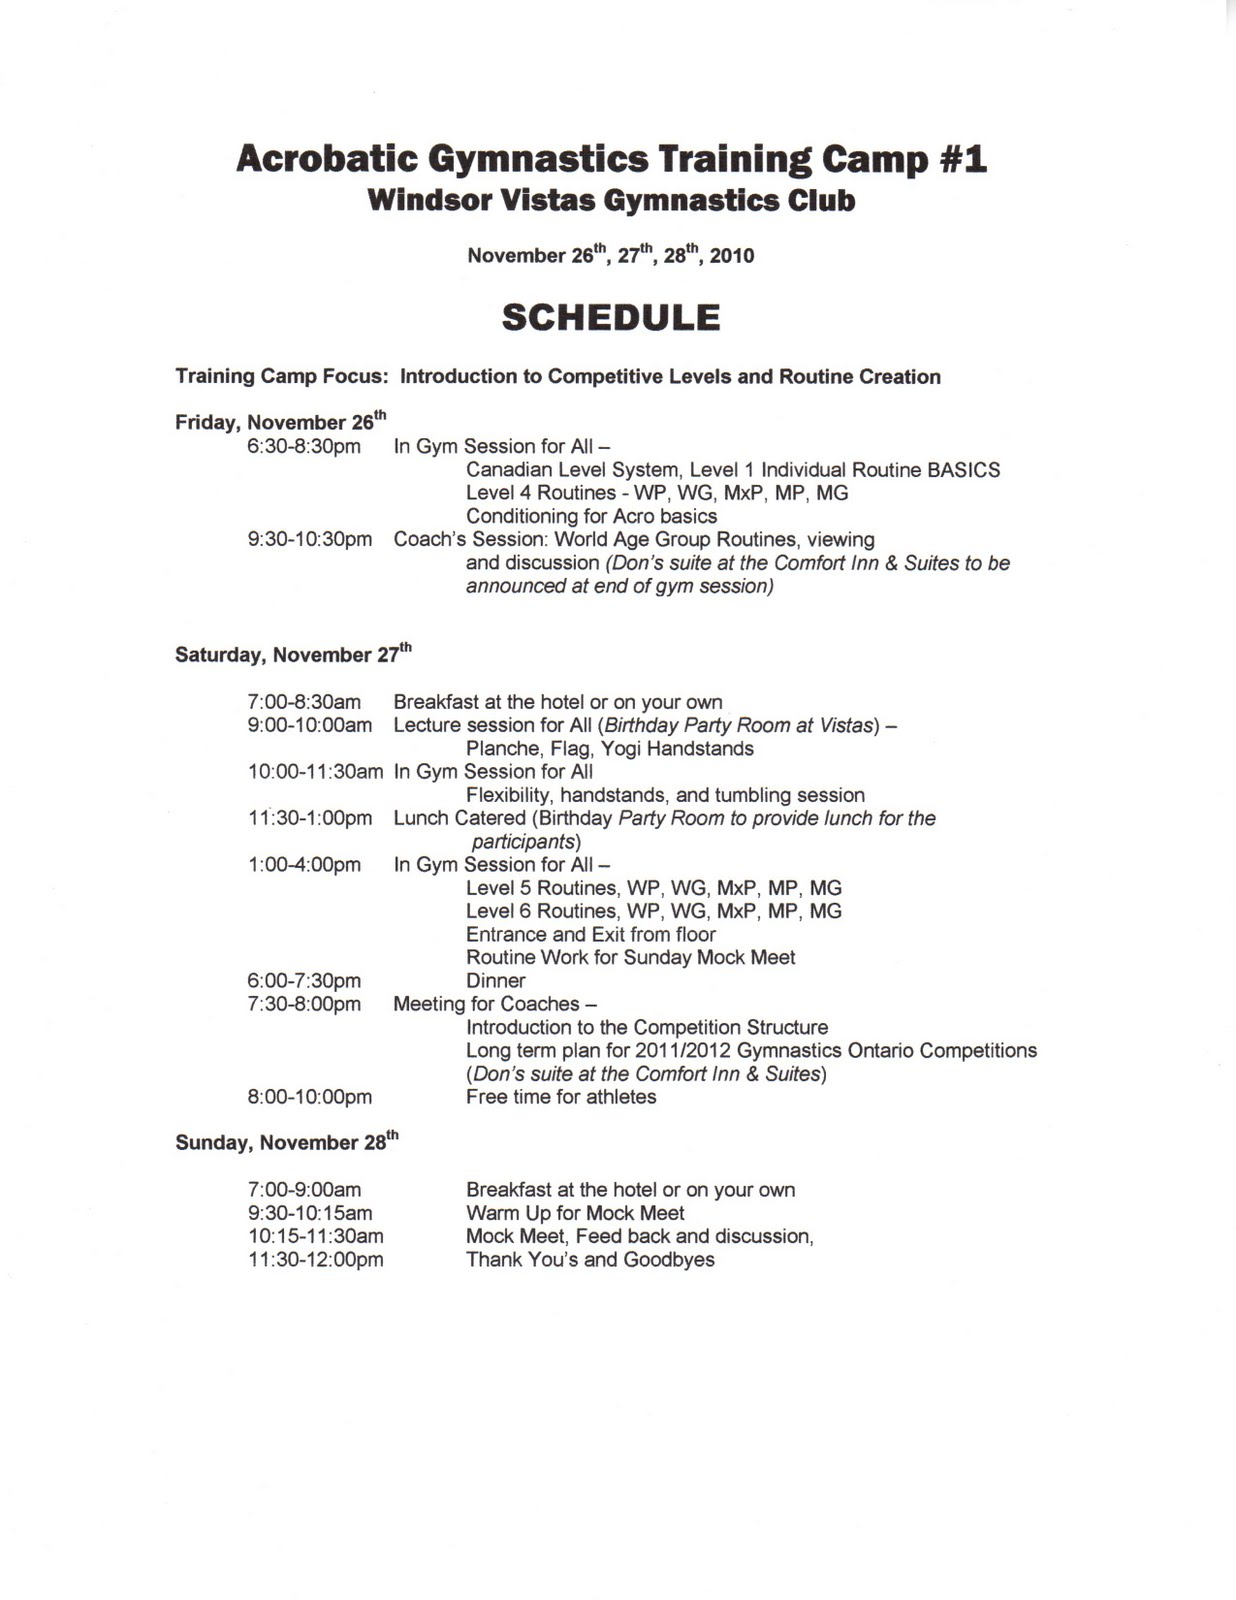 Oakville Gymnastics Club Acrobatic Team Training Camp Schedule Cosmetology Instructor Resume Samples